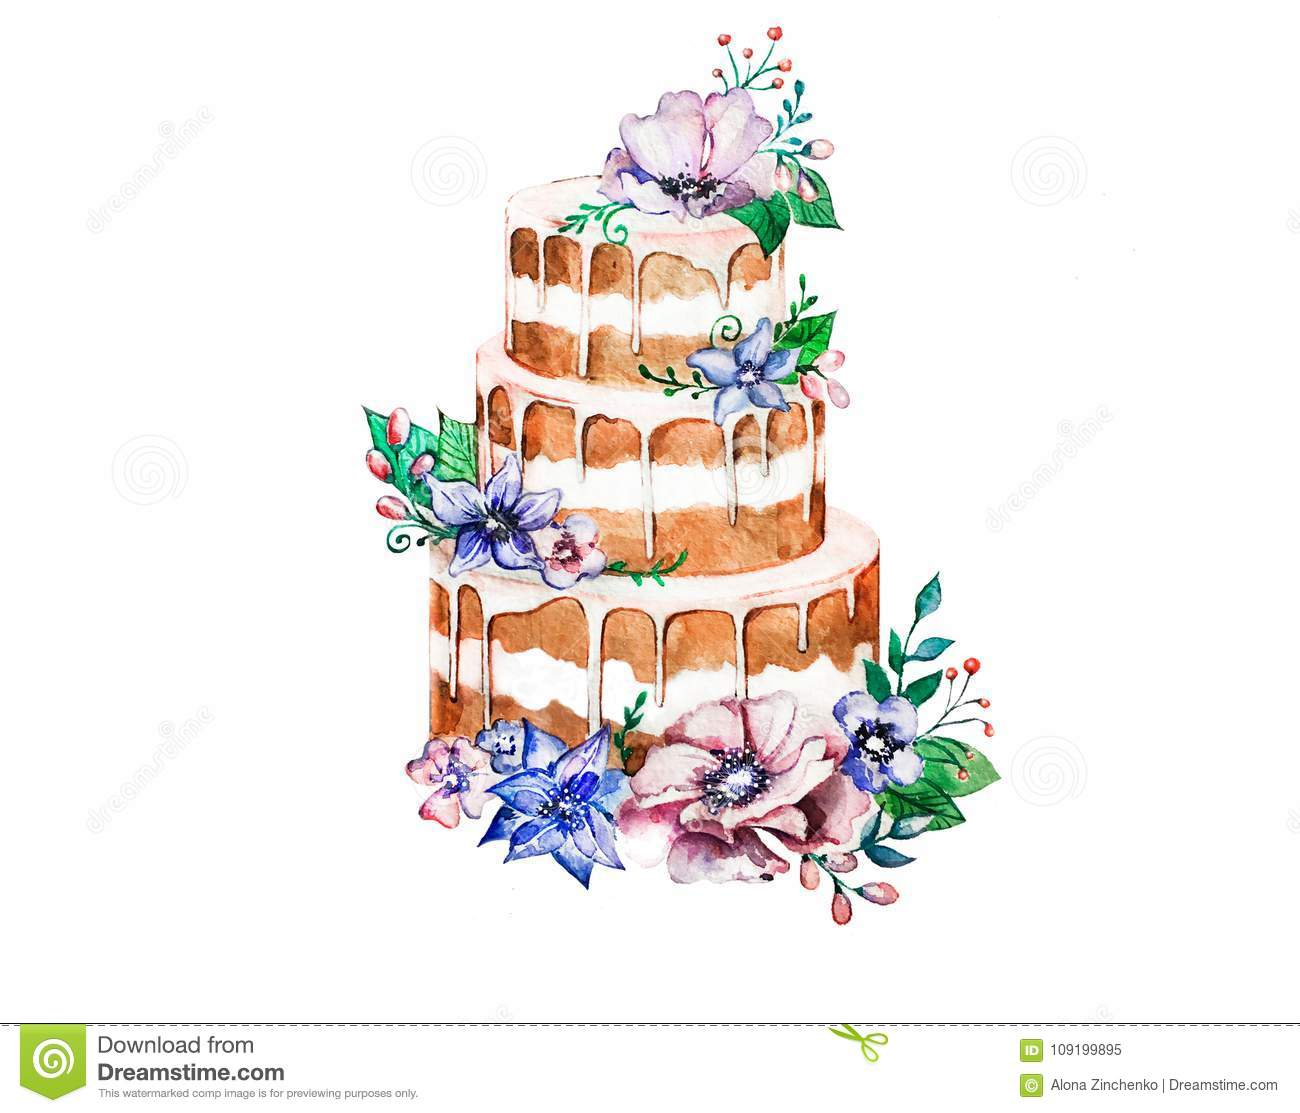 Watercolor Cake With Flowers Three Tier Cream Decorated A Wedding Birthday Celebration Drawing Can Be Used